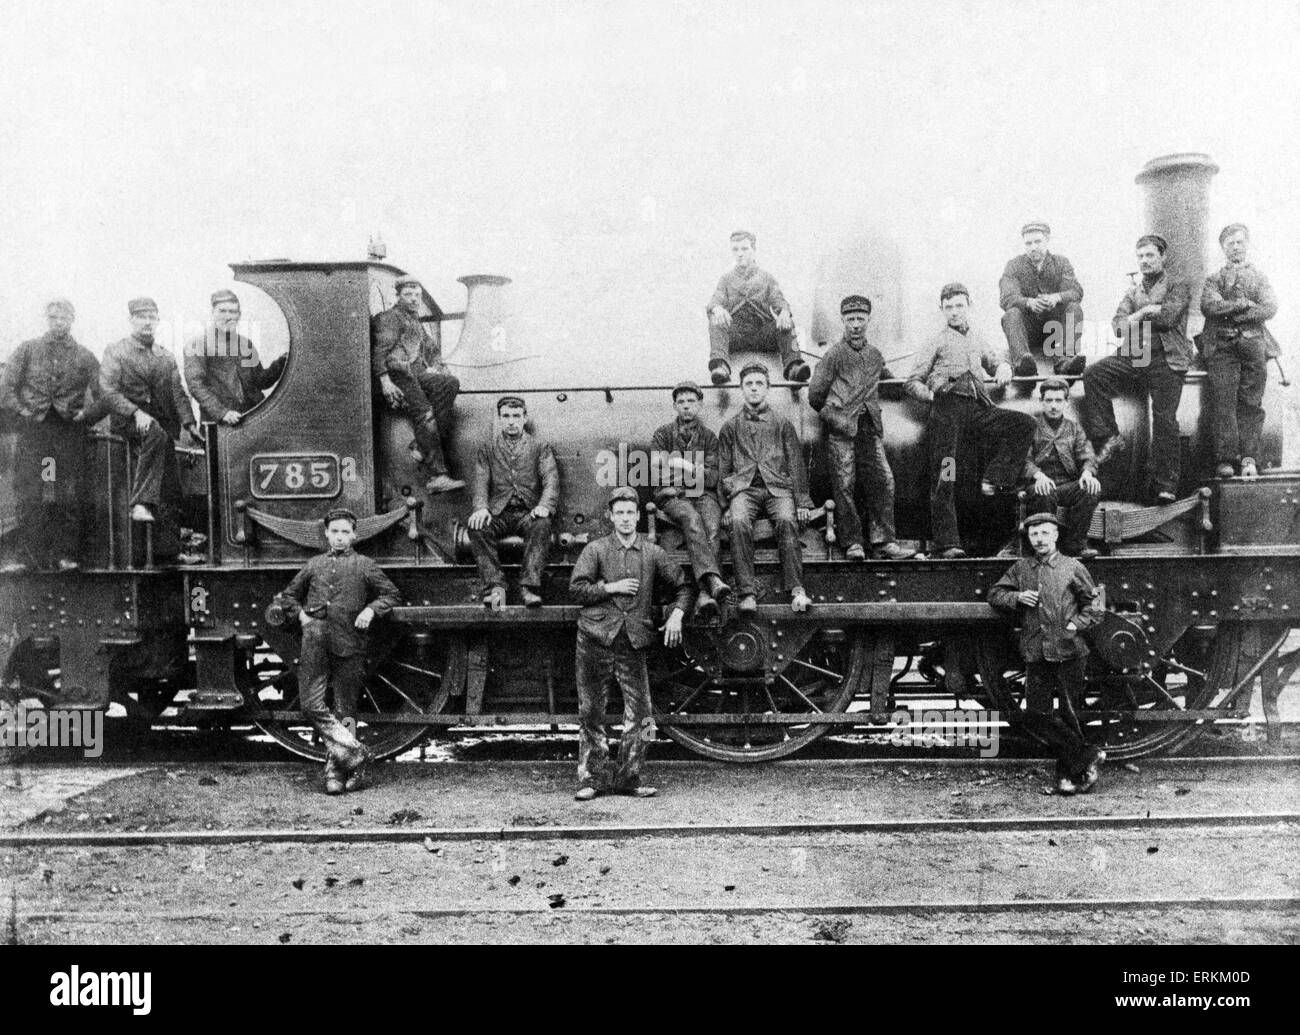 The crew of an steam locomotive pose beside the engine at Stafford Road sheds, circa 1900. - Stock Image